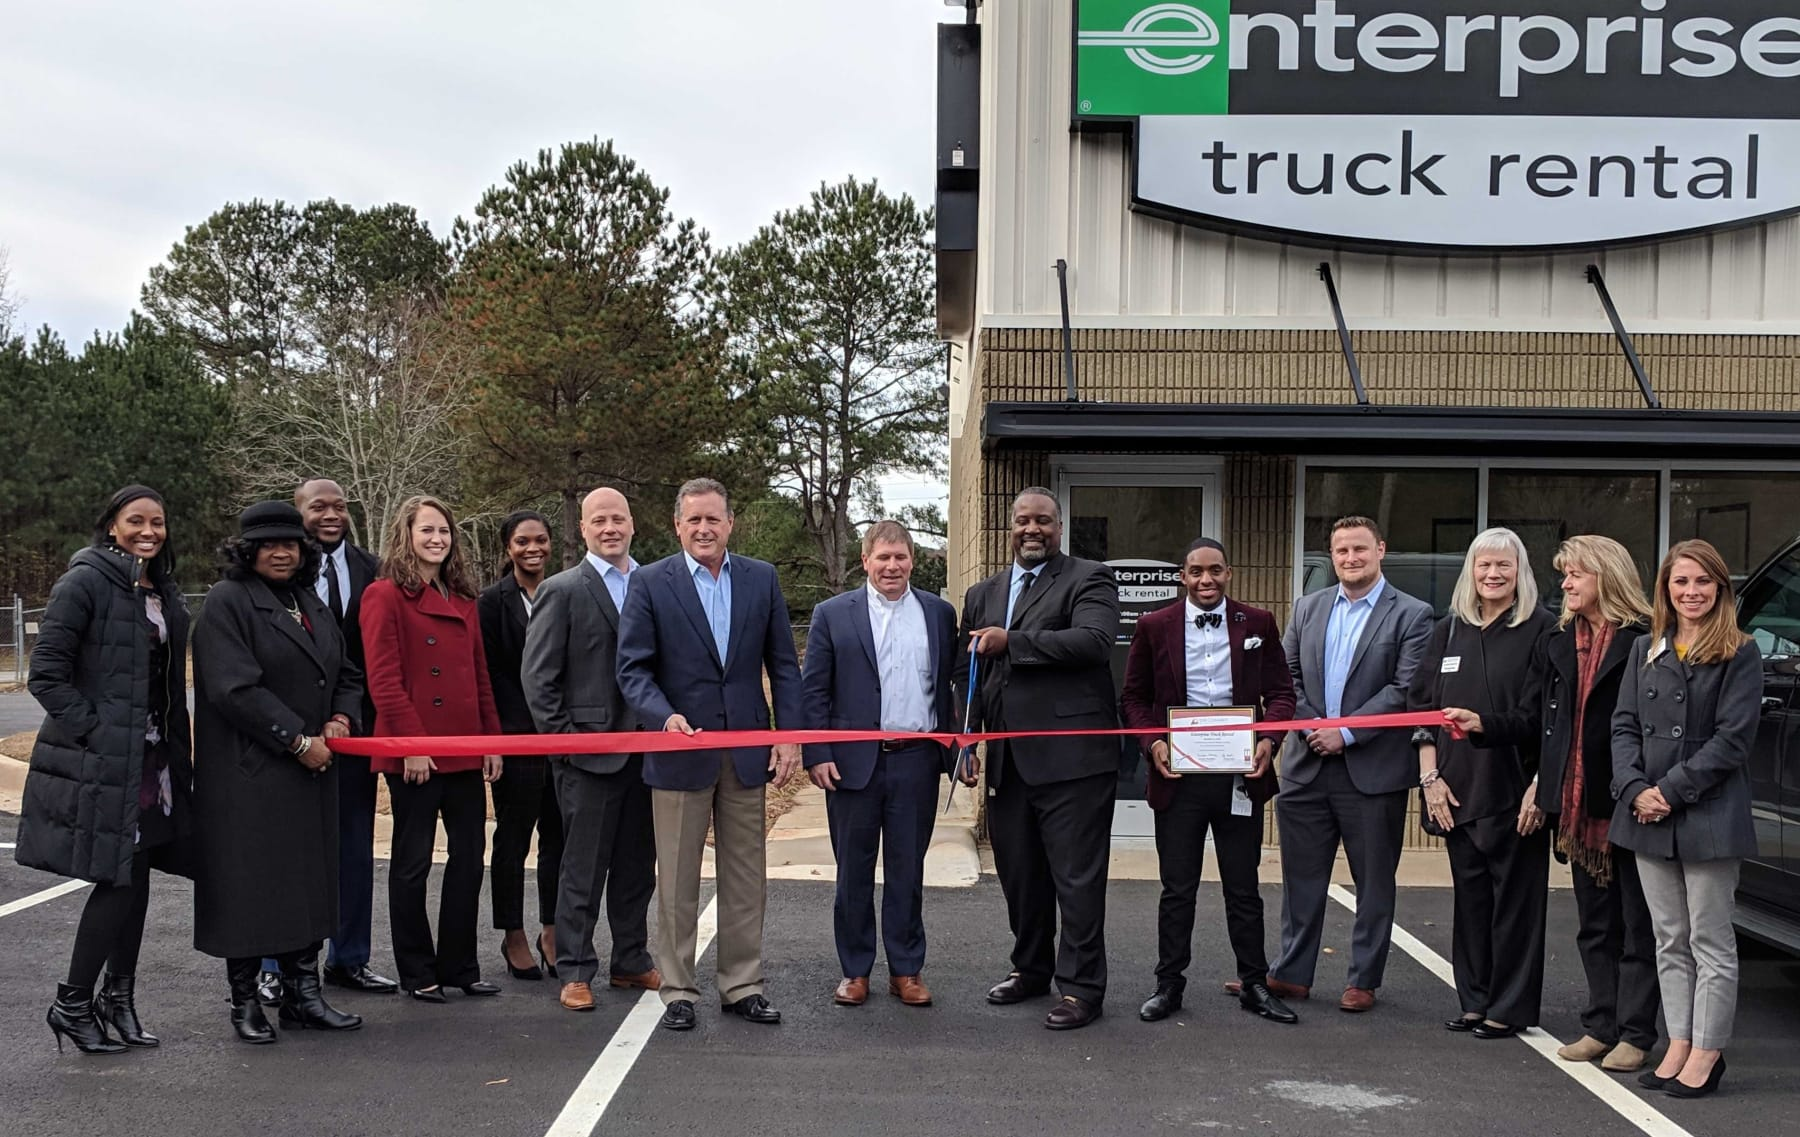 EnterpriseTruckRental-w1522.jpg